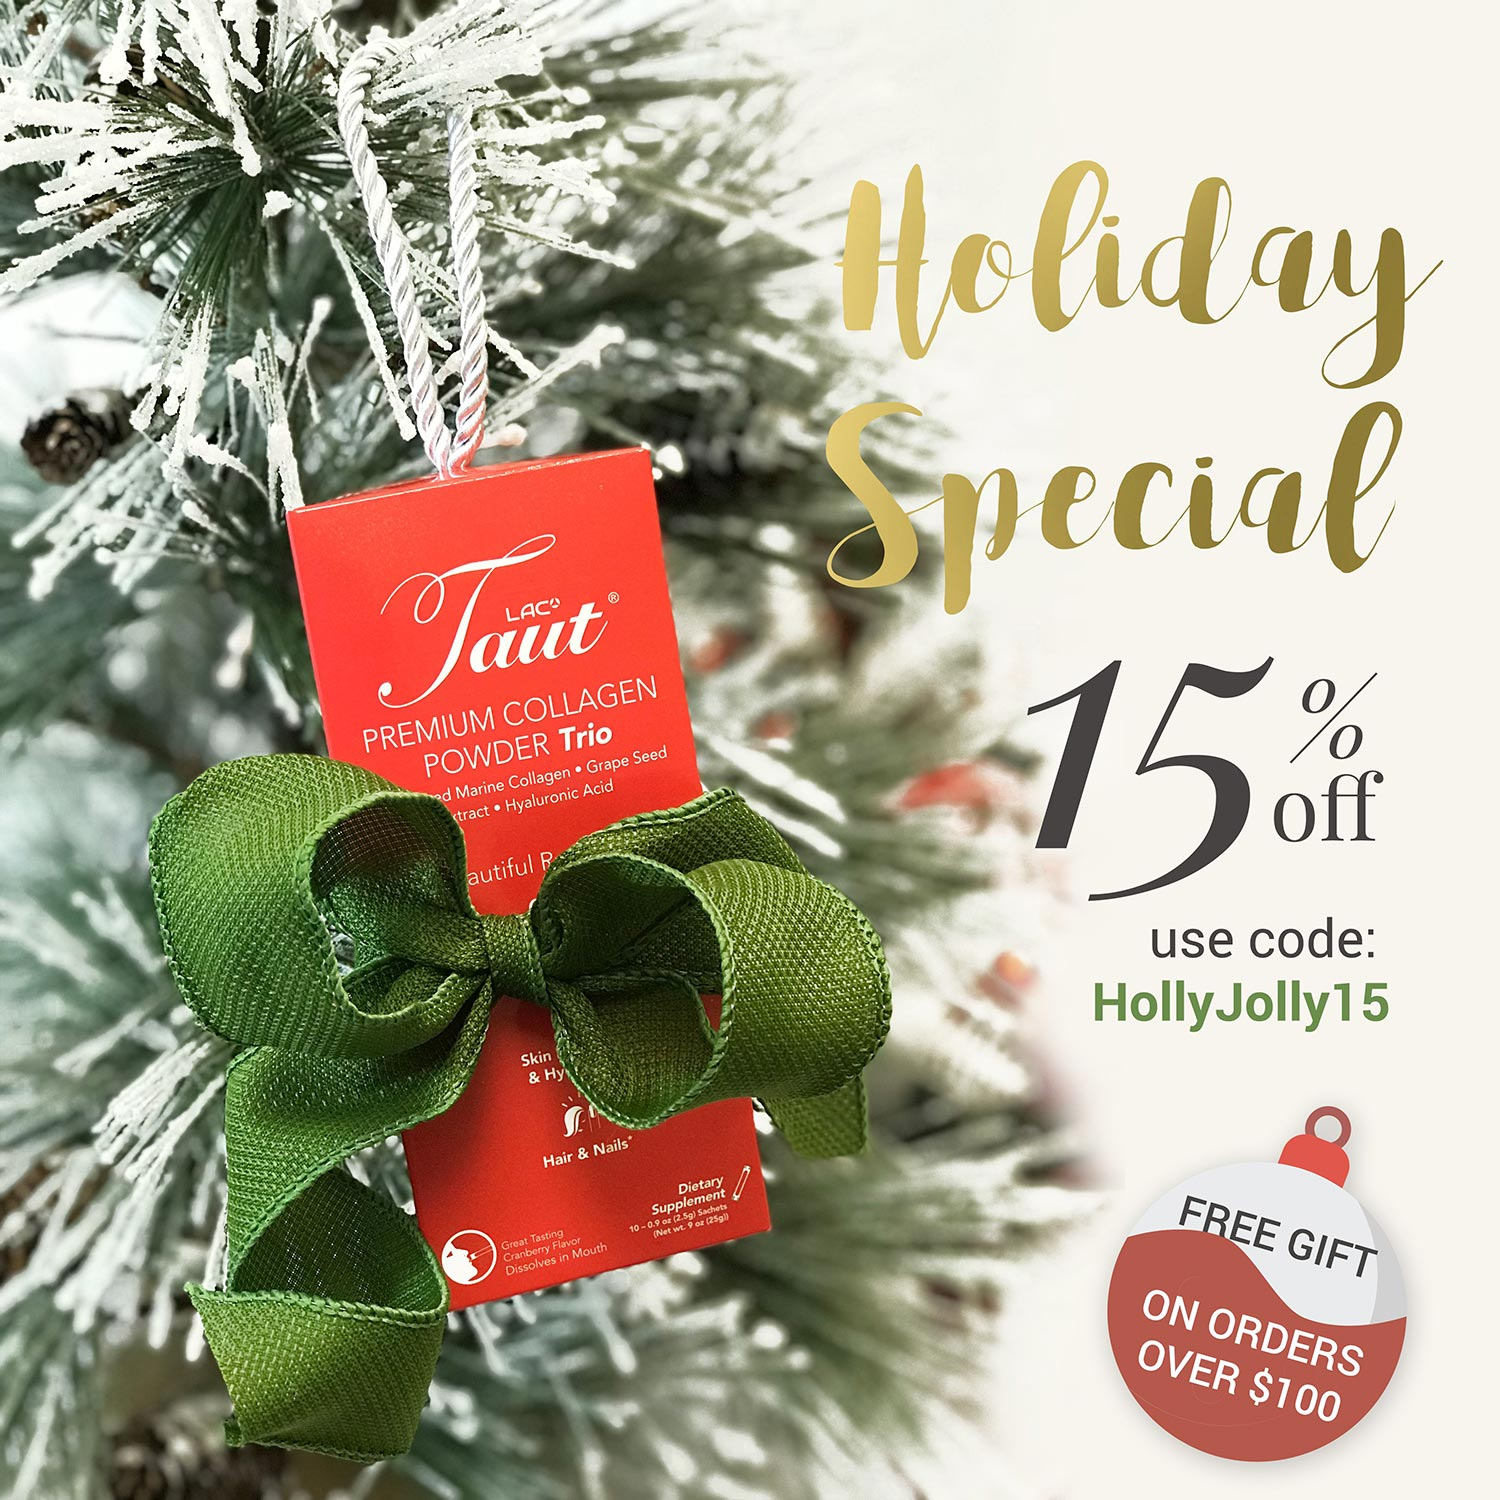 Holiday Special 15% off! Use code HollyJolly15 | PLUS Receive a FREE GIFT with orders over $100!